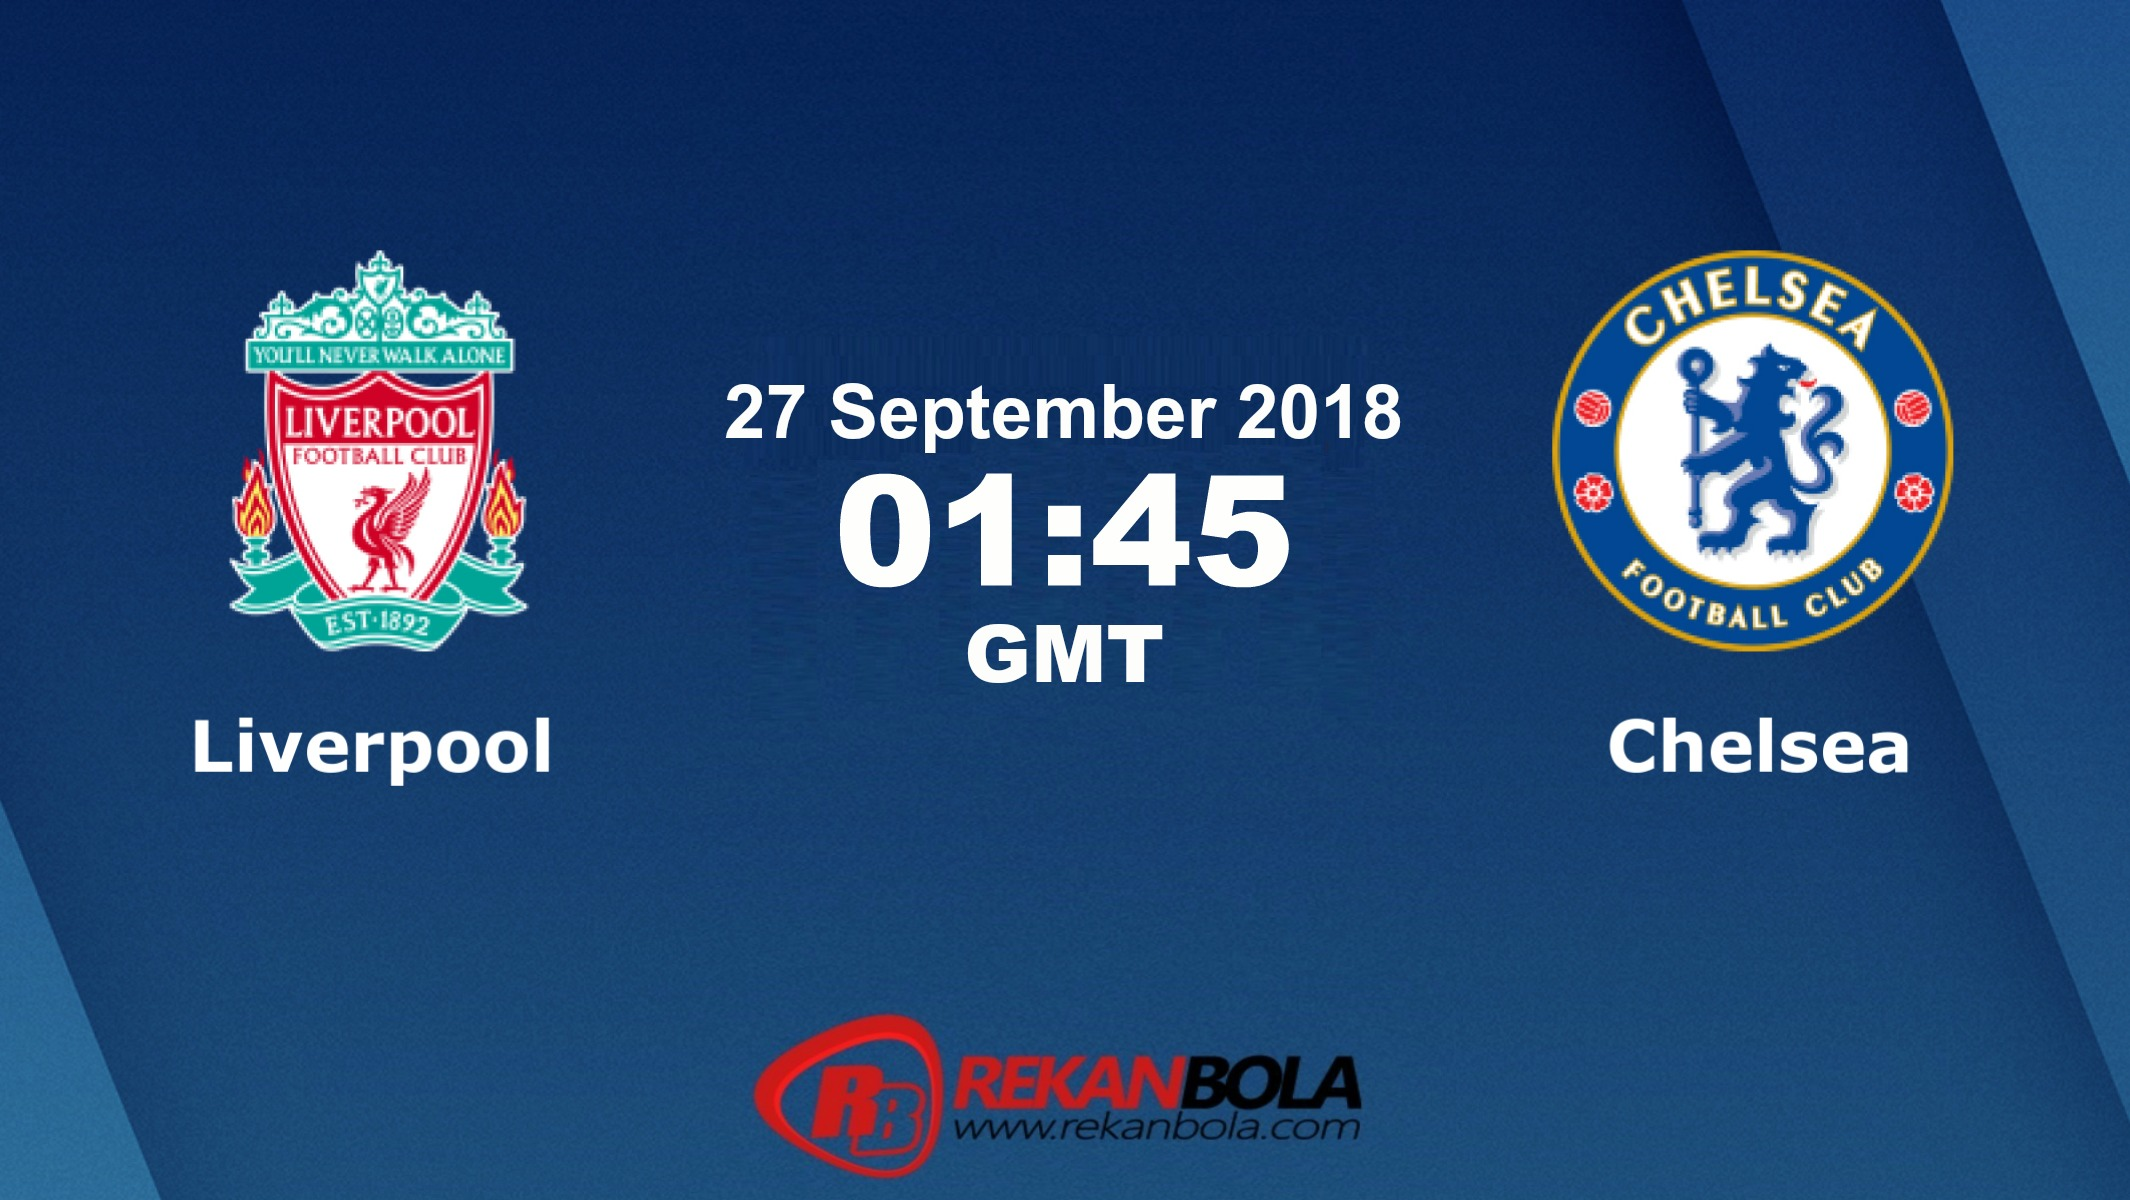 Nonton Siaran Live Streaming Liverpool Vs Chelsea 27 September 2018